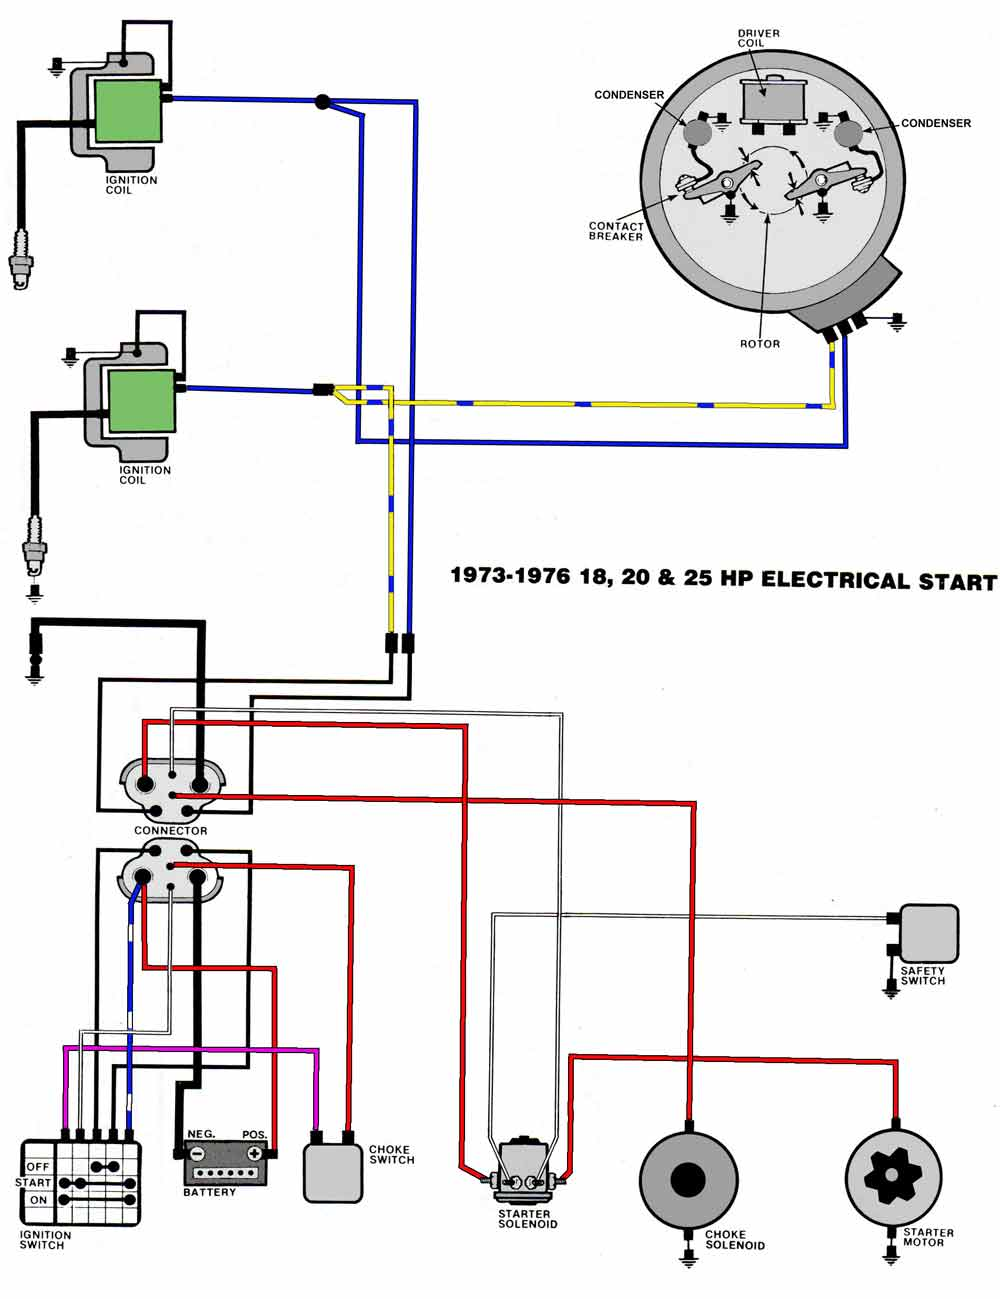 1969 johnson outboard wiring diagram wiring diagram data schema 1972 Johnson Outboard Wiring Diagram 50 HP 1969 johnson outboard wiring diagram wiring diagram 1972 johnson outboard wiring diagram 50 hp 1969 johnson outboard wiring diagram